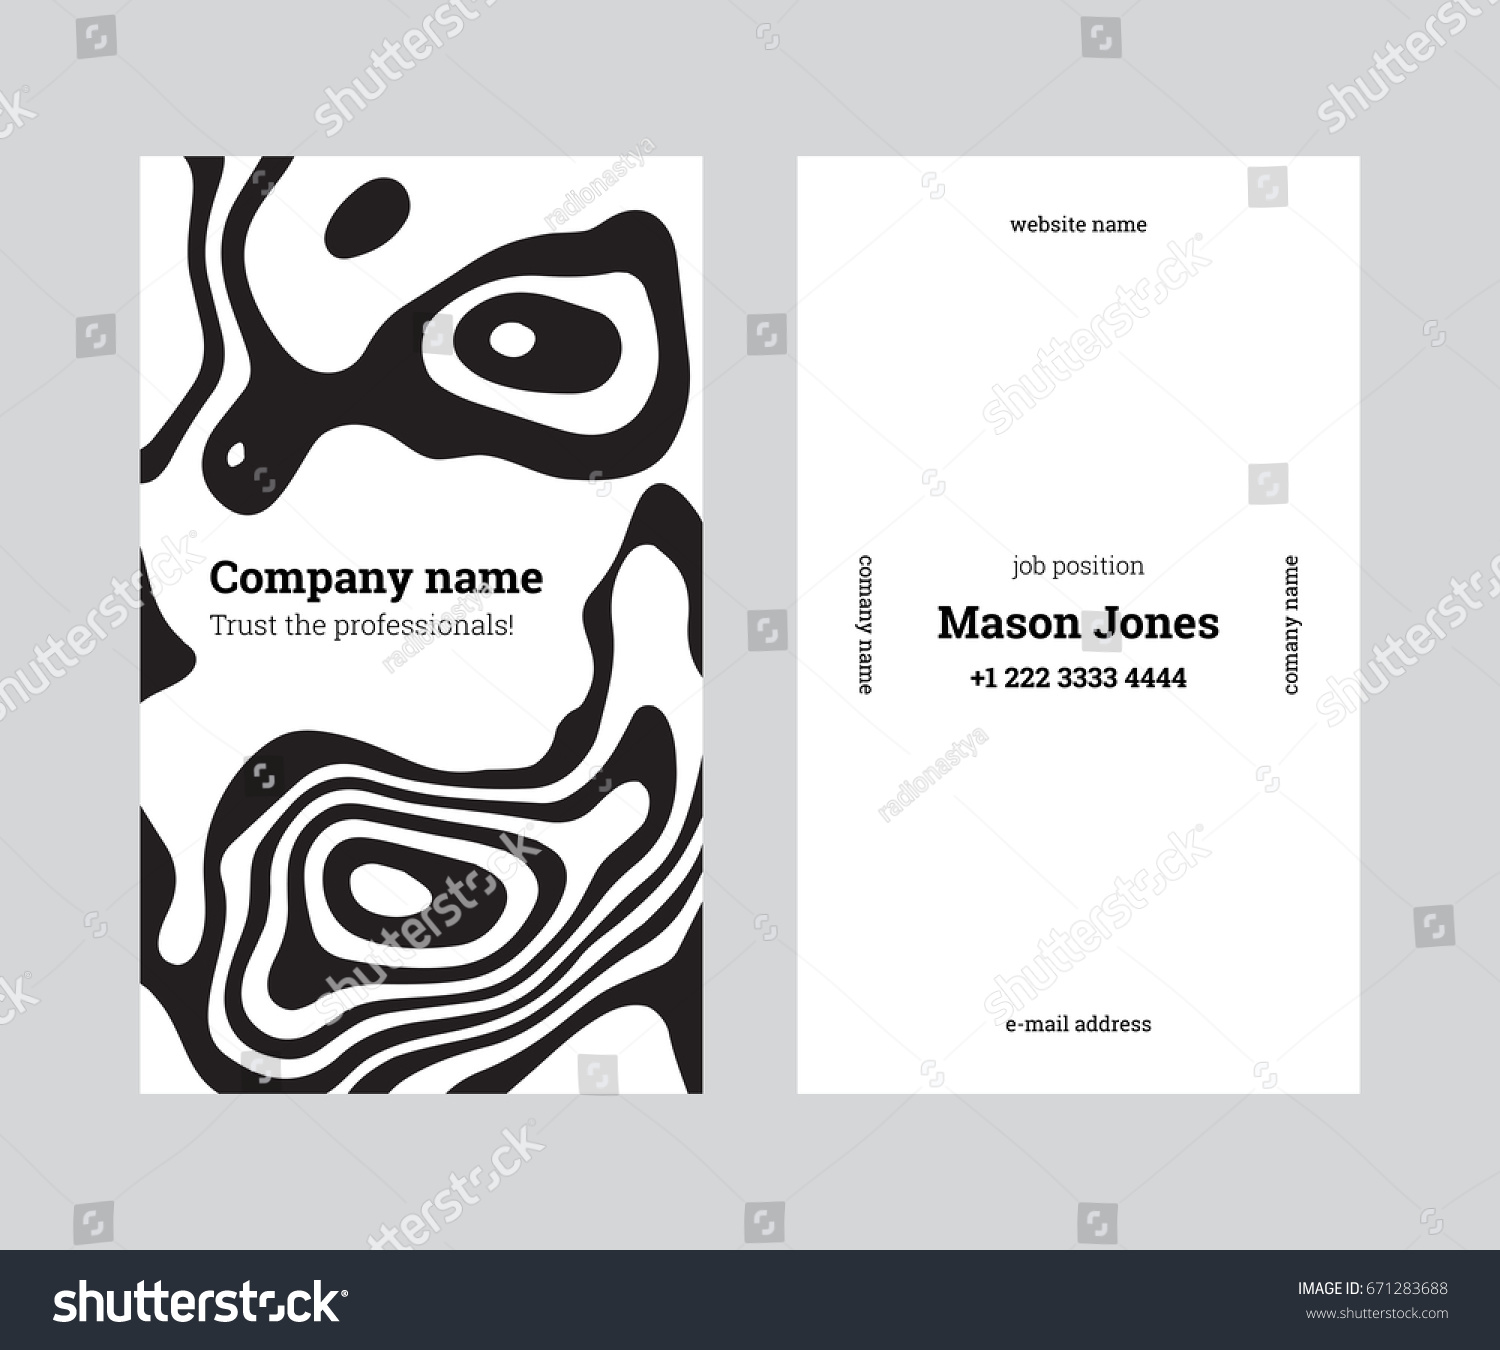 White Black Doublesided Business Card Template Stock Vector ...